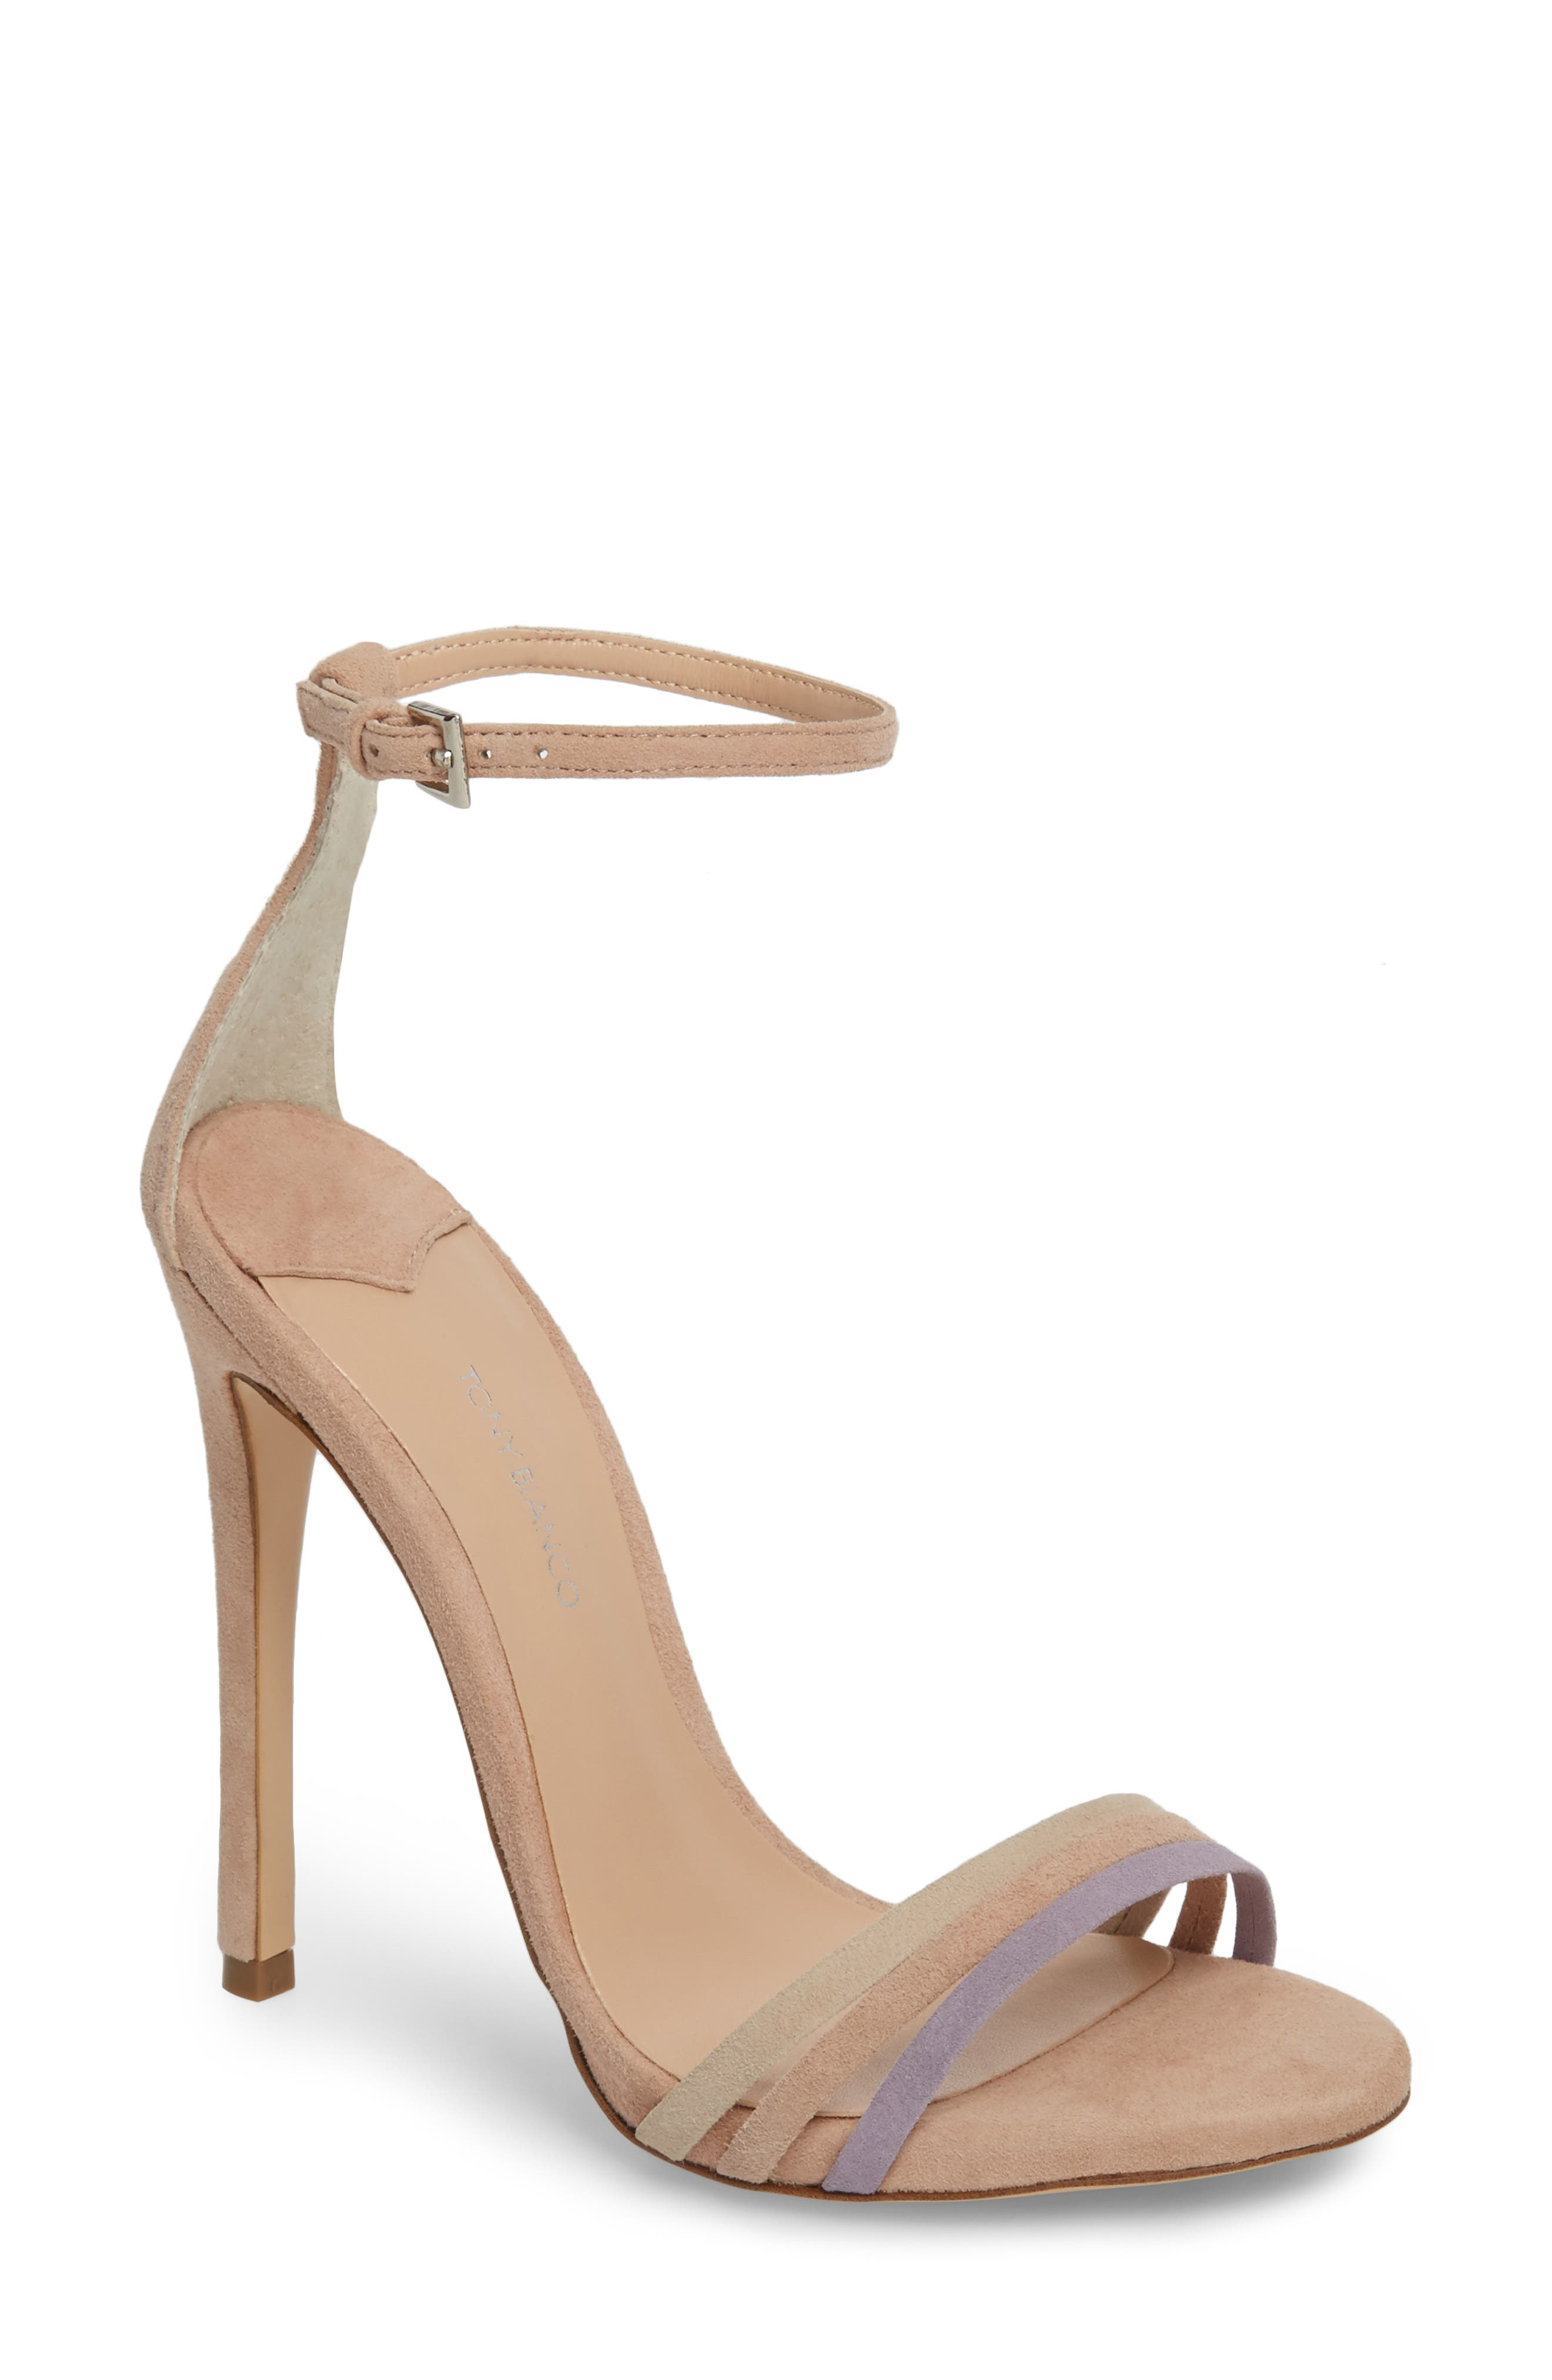 Aroma Strappy Sandal,                             Main thumbnail 1, color,                             Blush Suede